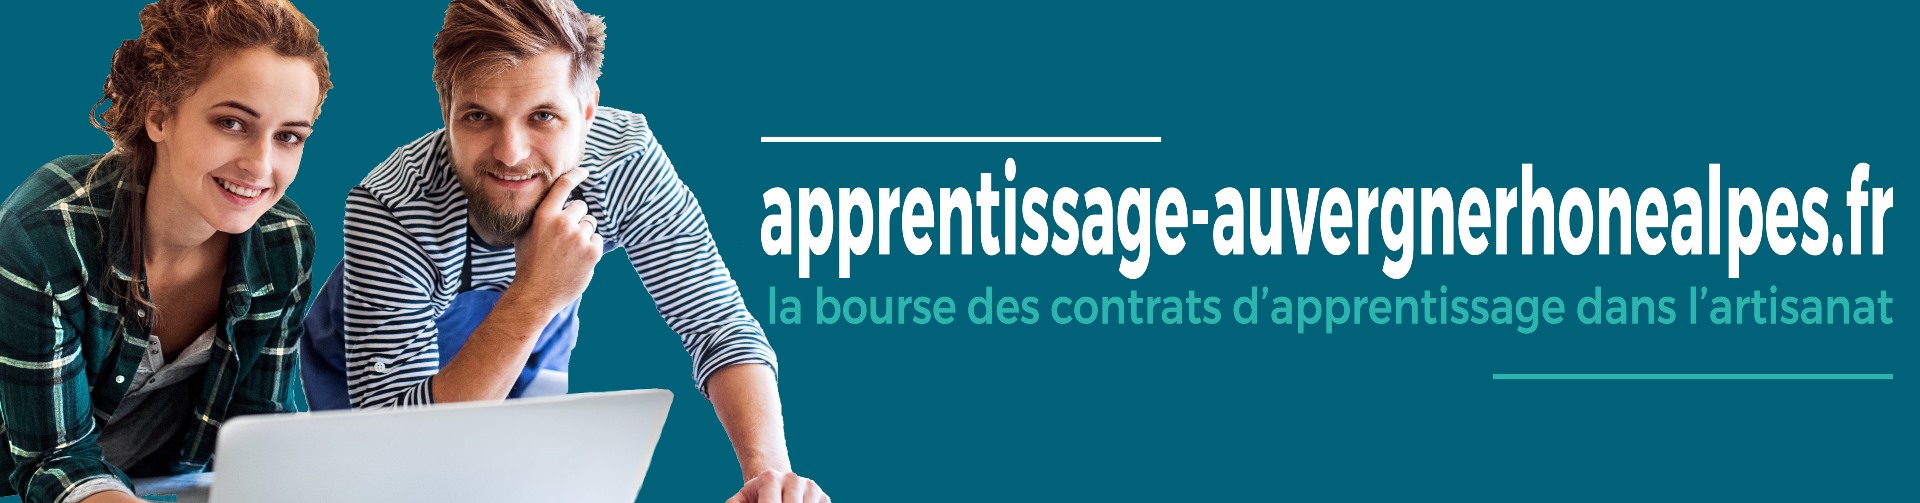 slide_bourse_apprentissage.jpg